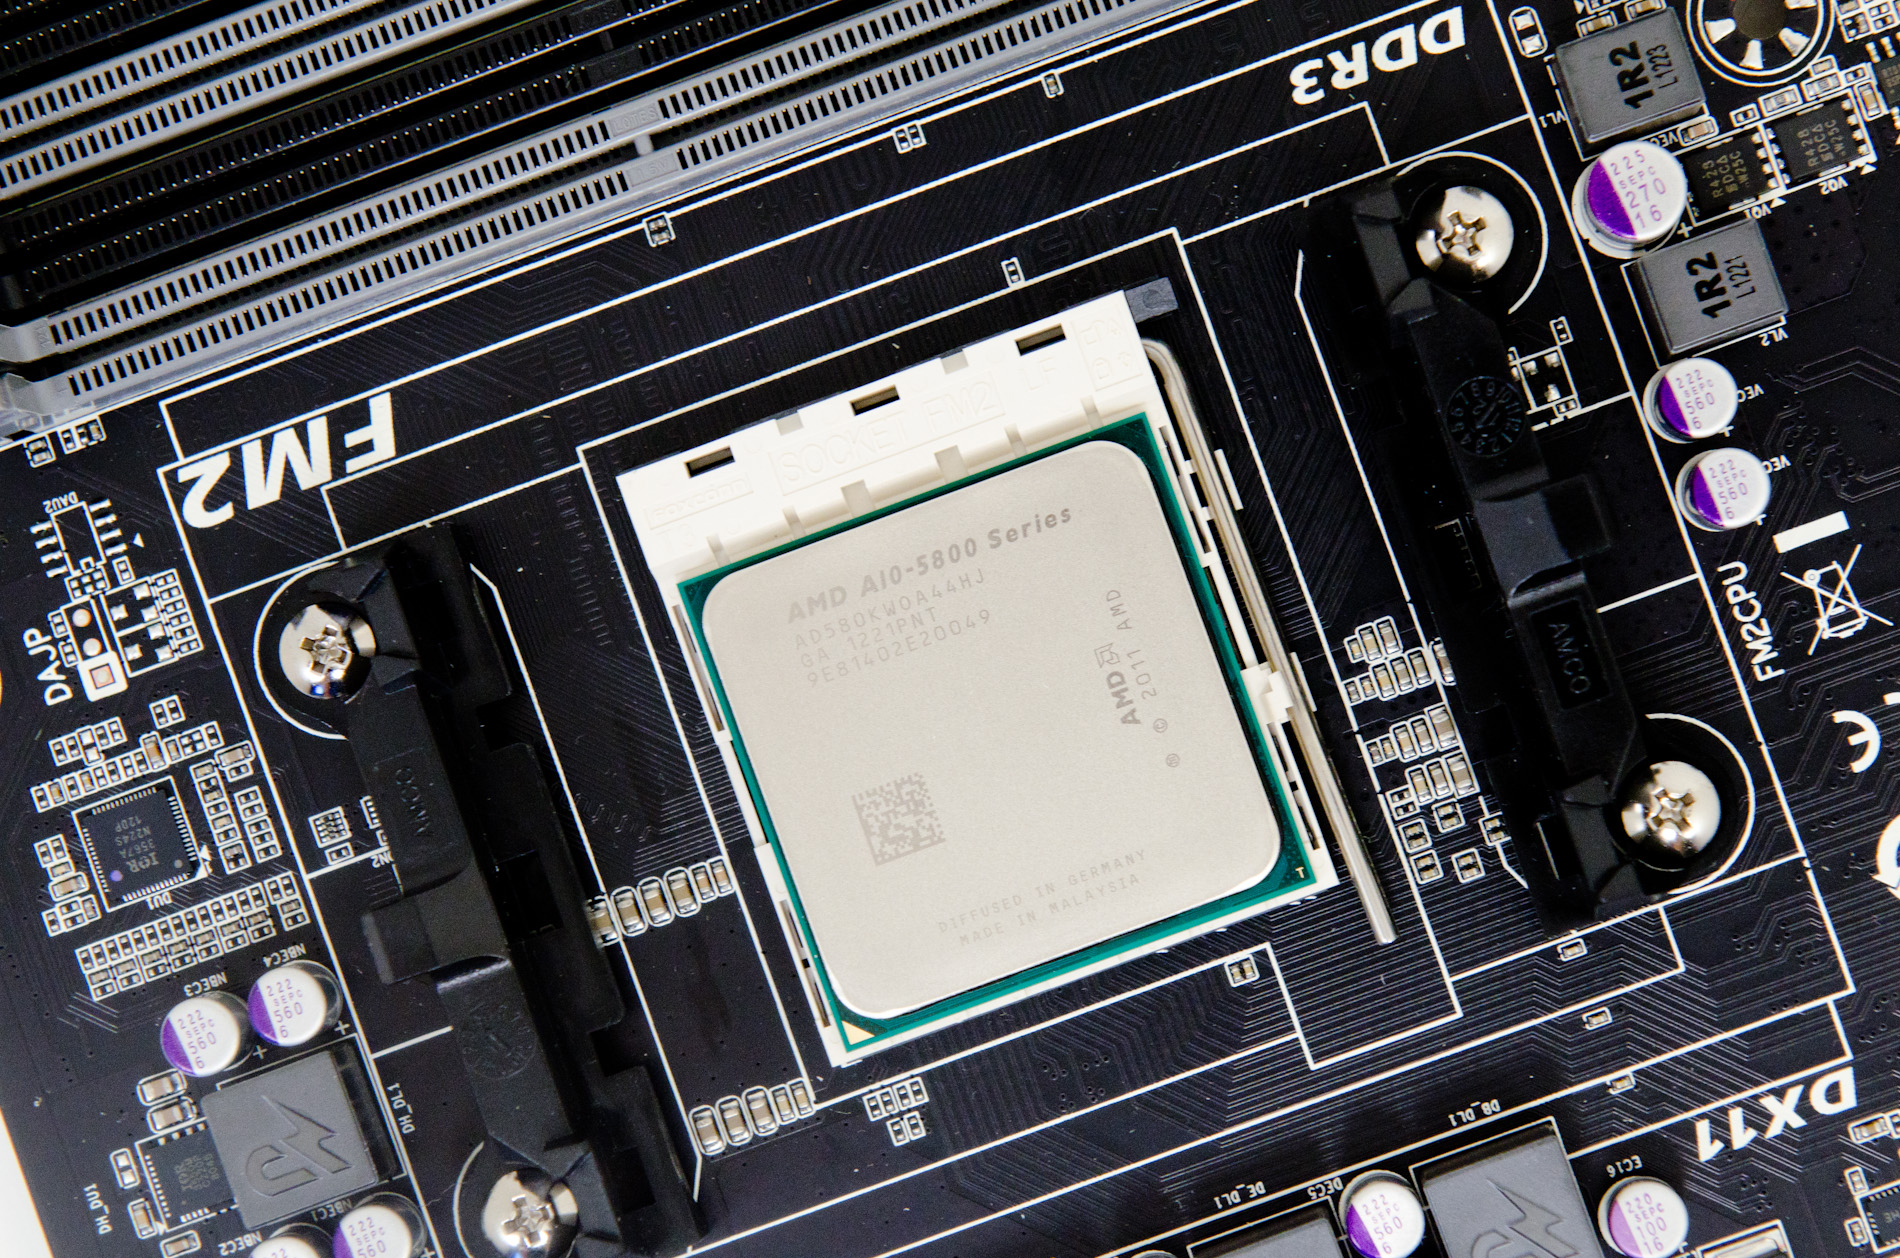 Amd A10 5800k A8 5600k Review Trinity On The Desktop Part 1 List Of 7400 Series Integrated Circuits Wikipedia Free